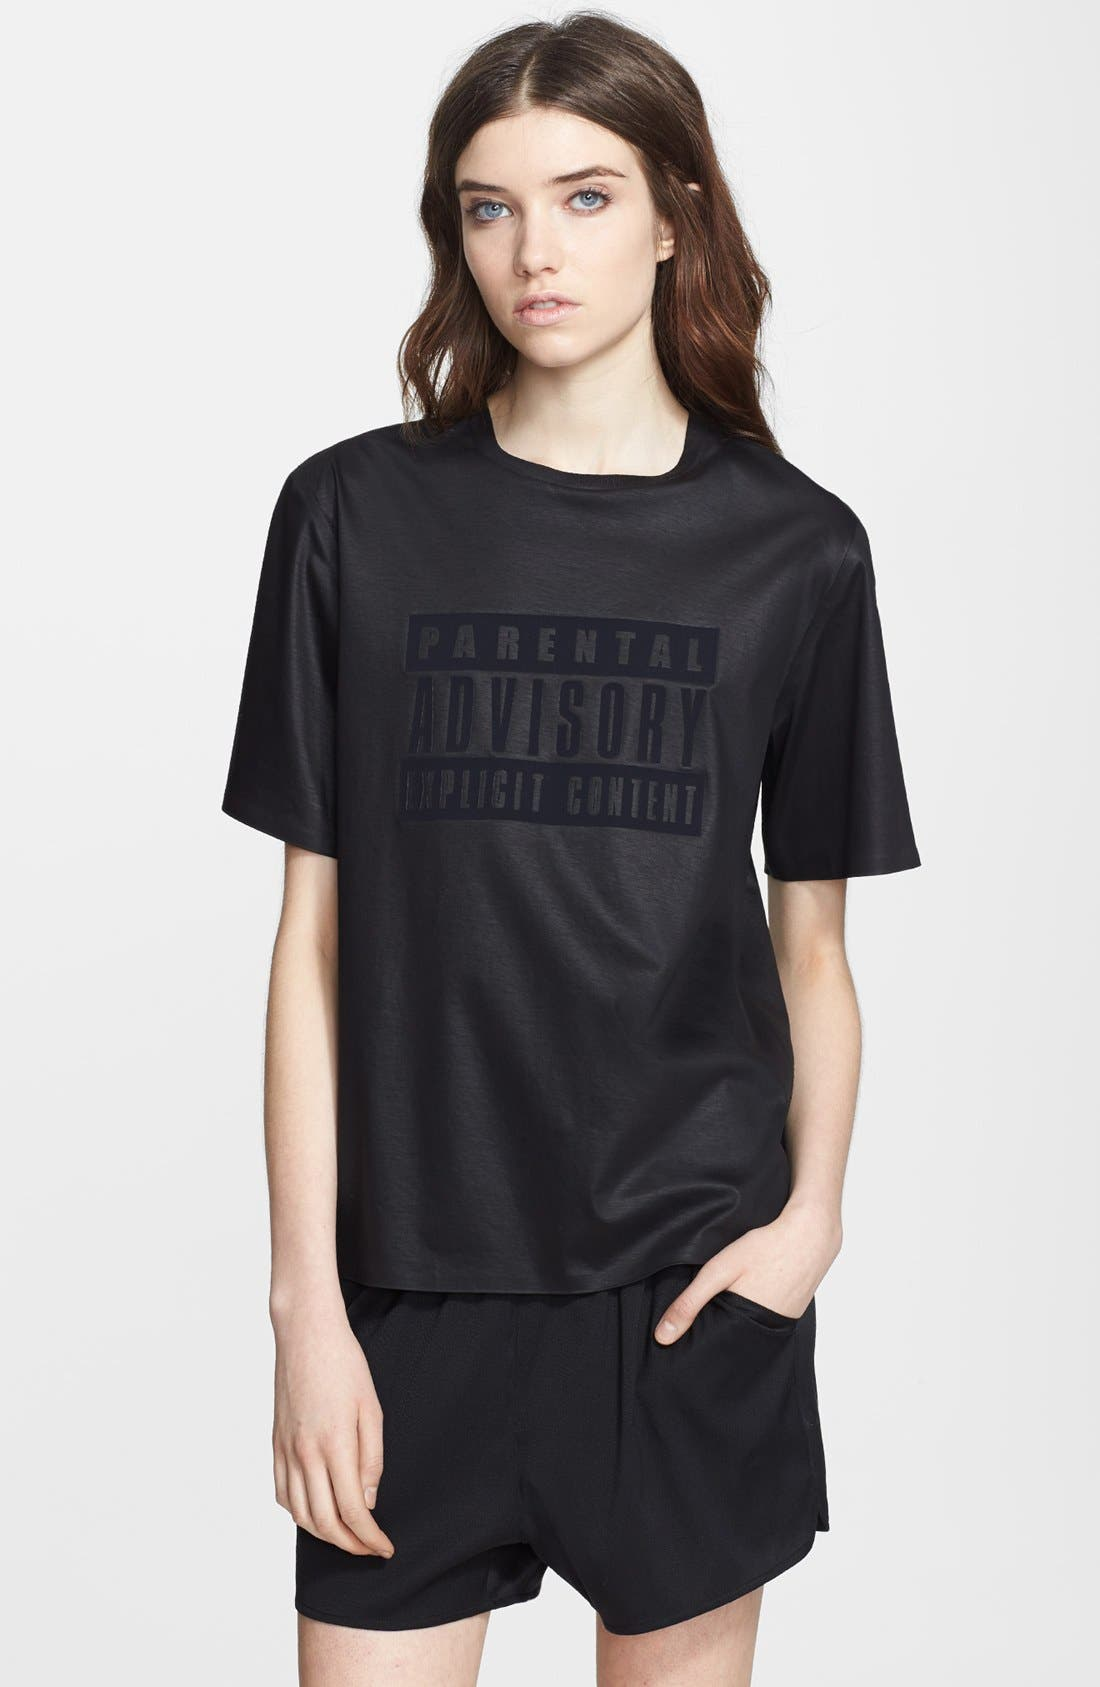 Main Image - Alexander Wang 'Parental Advisory' Crewneck Tee